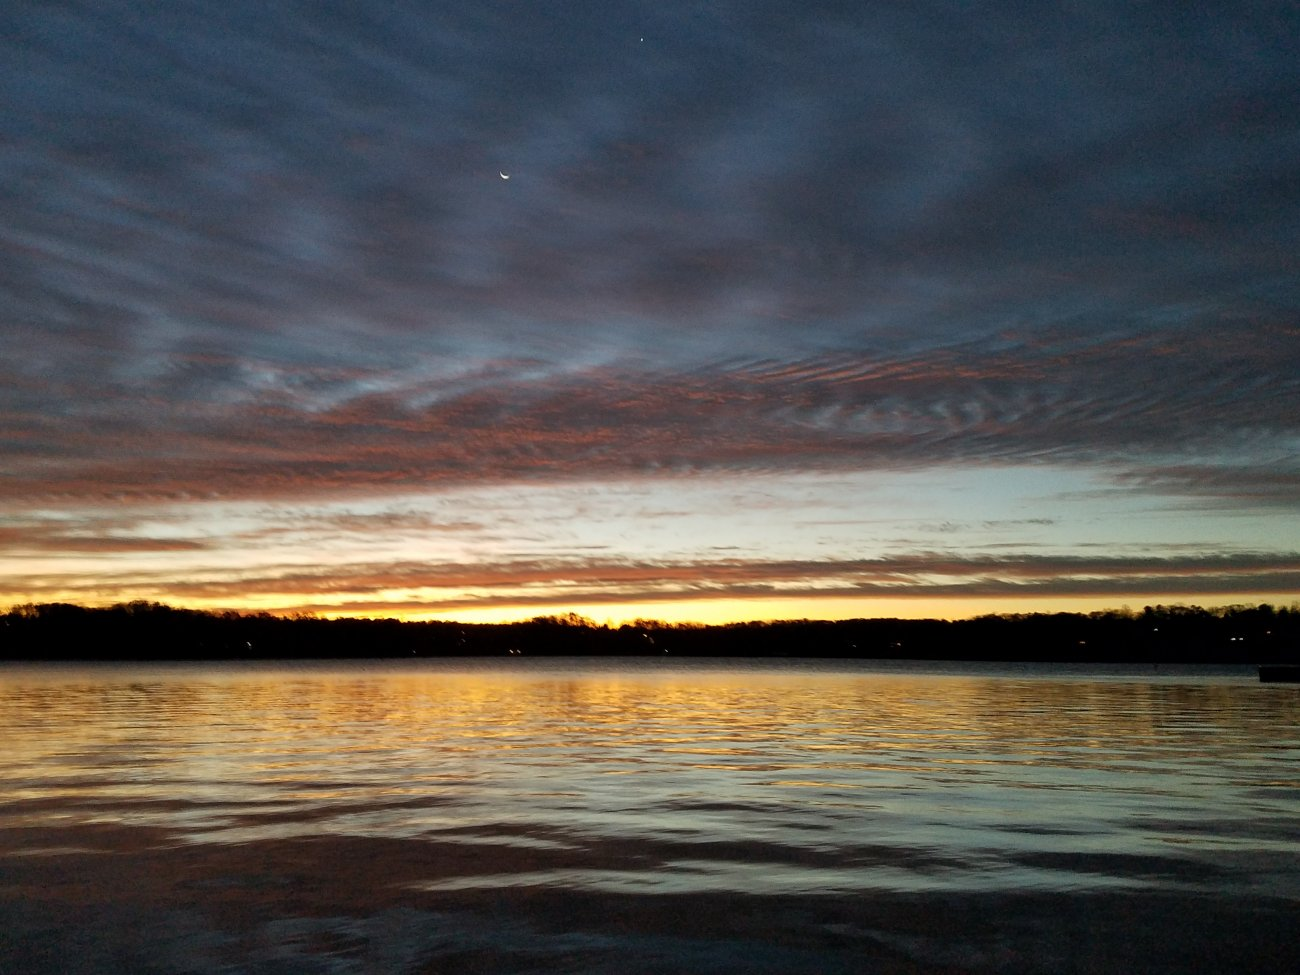 Sunrise at the lake 20181204.jpg